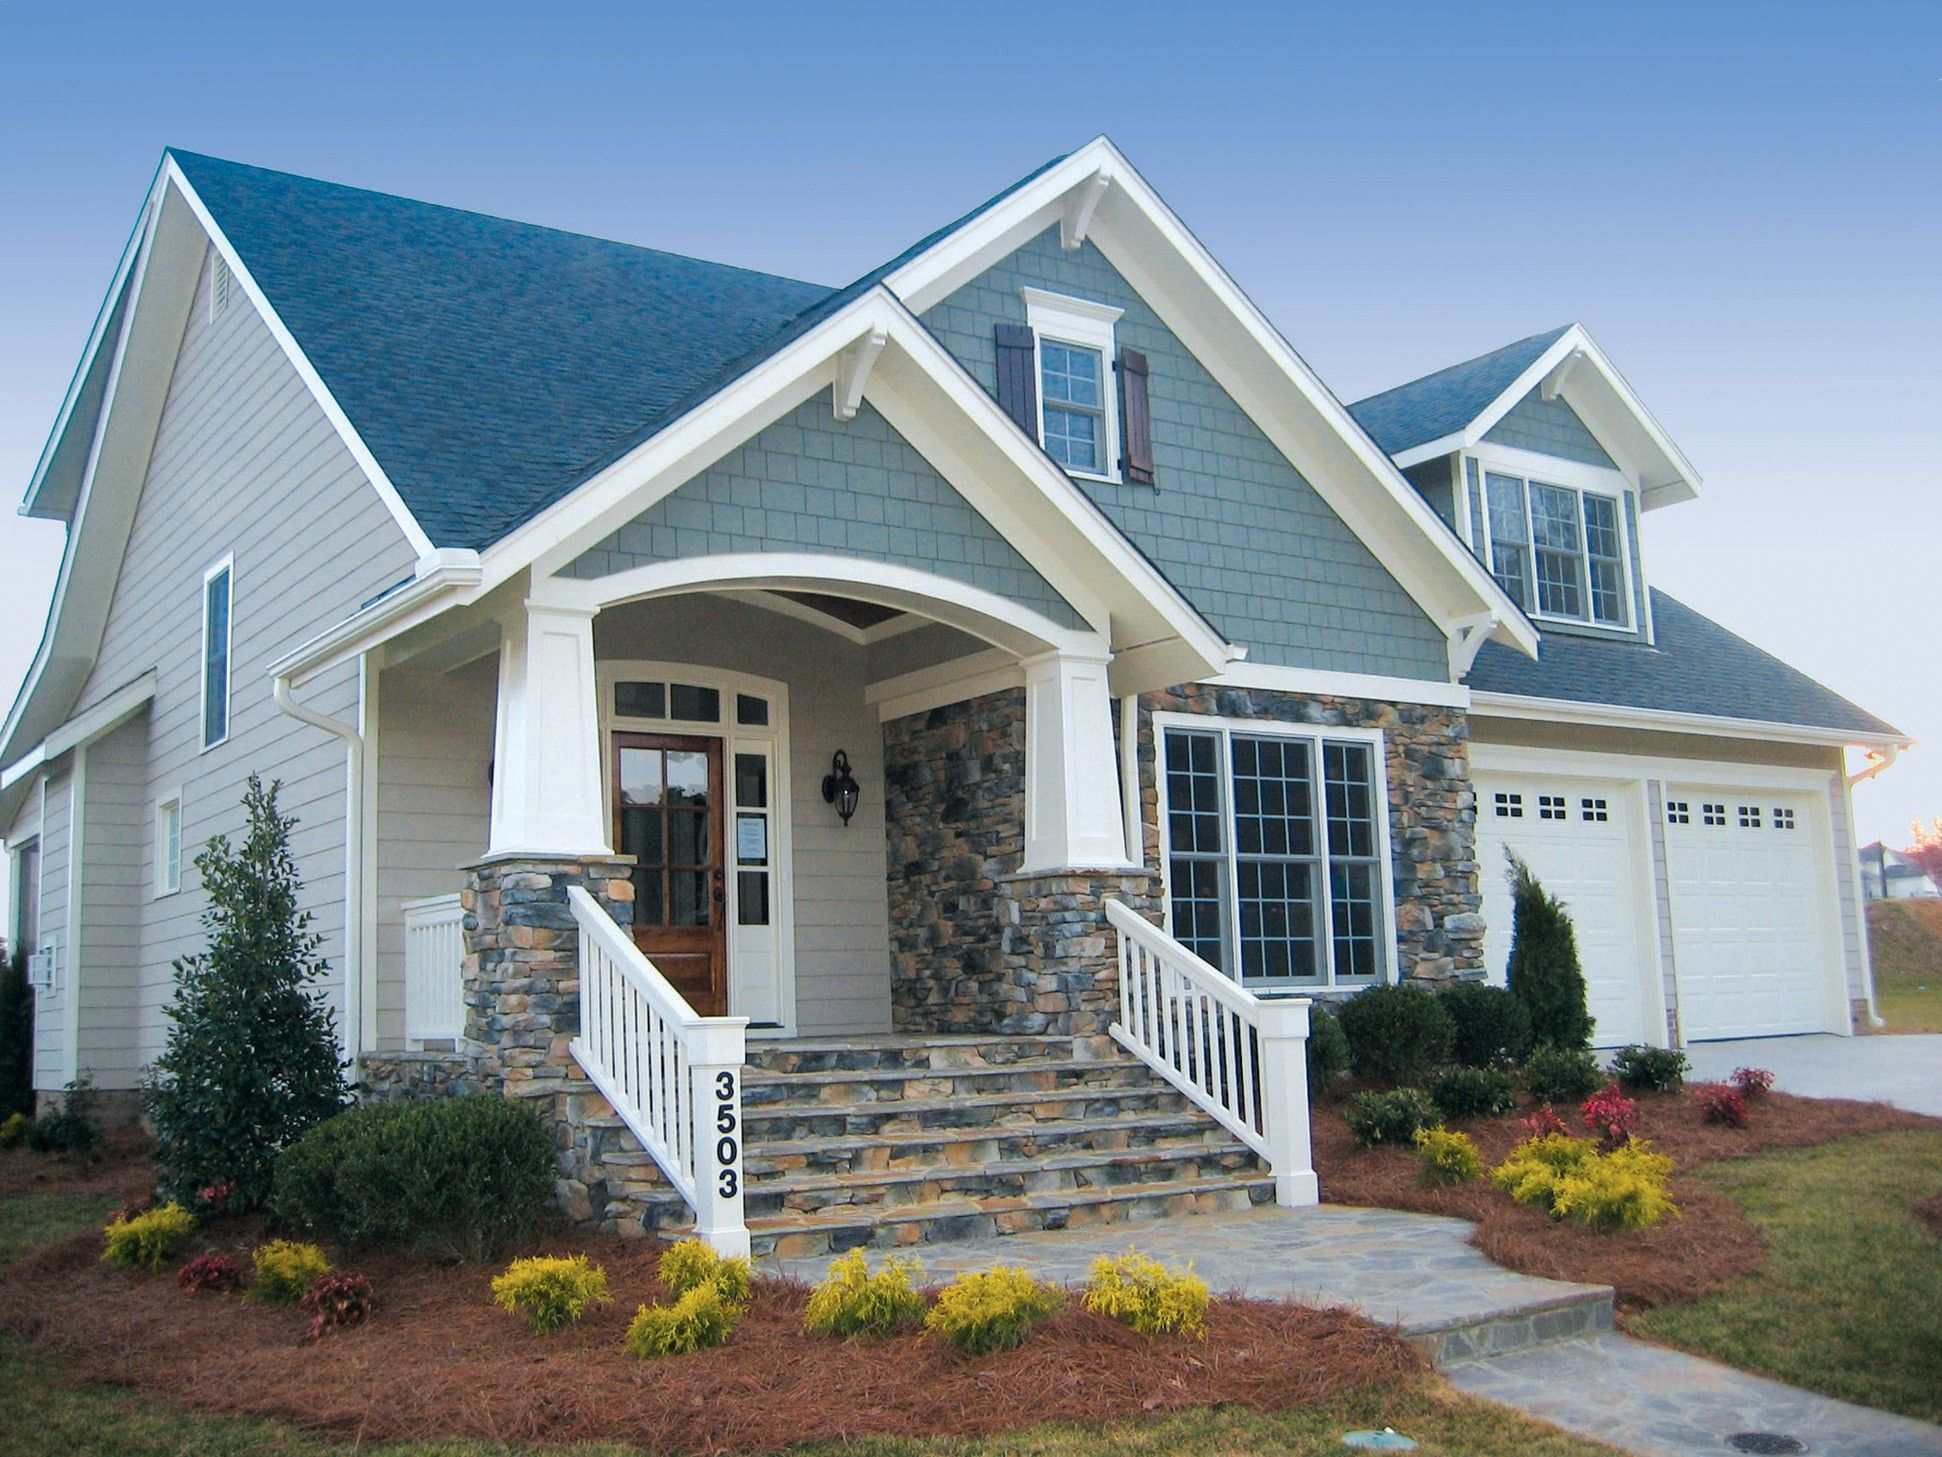 Average size and functional cute home with front porch for Cute front porches